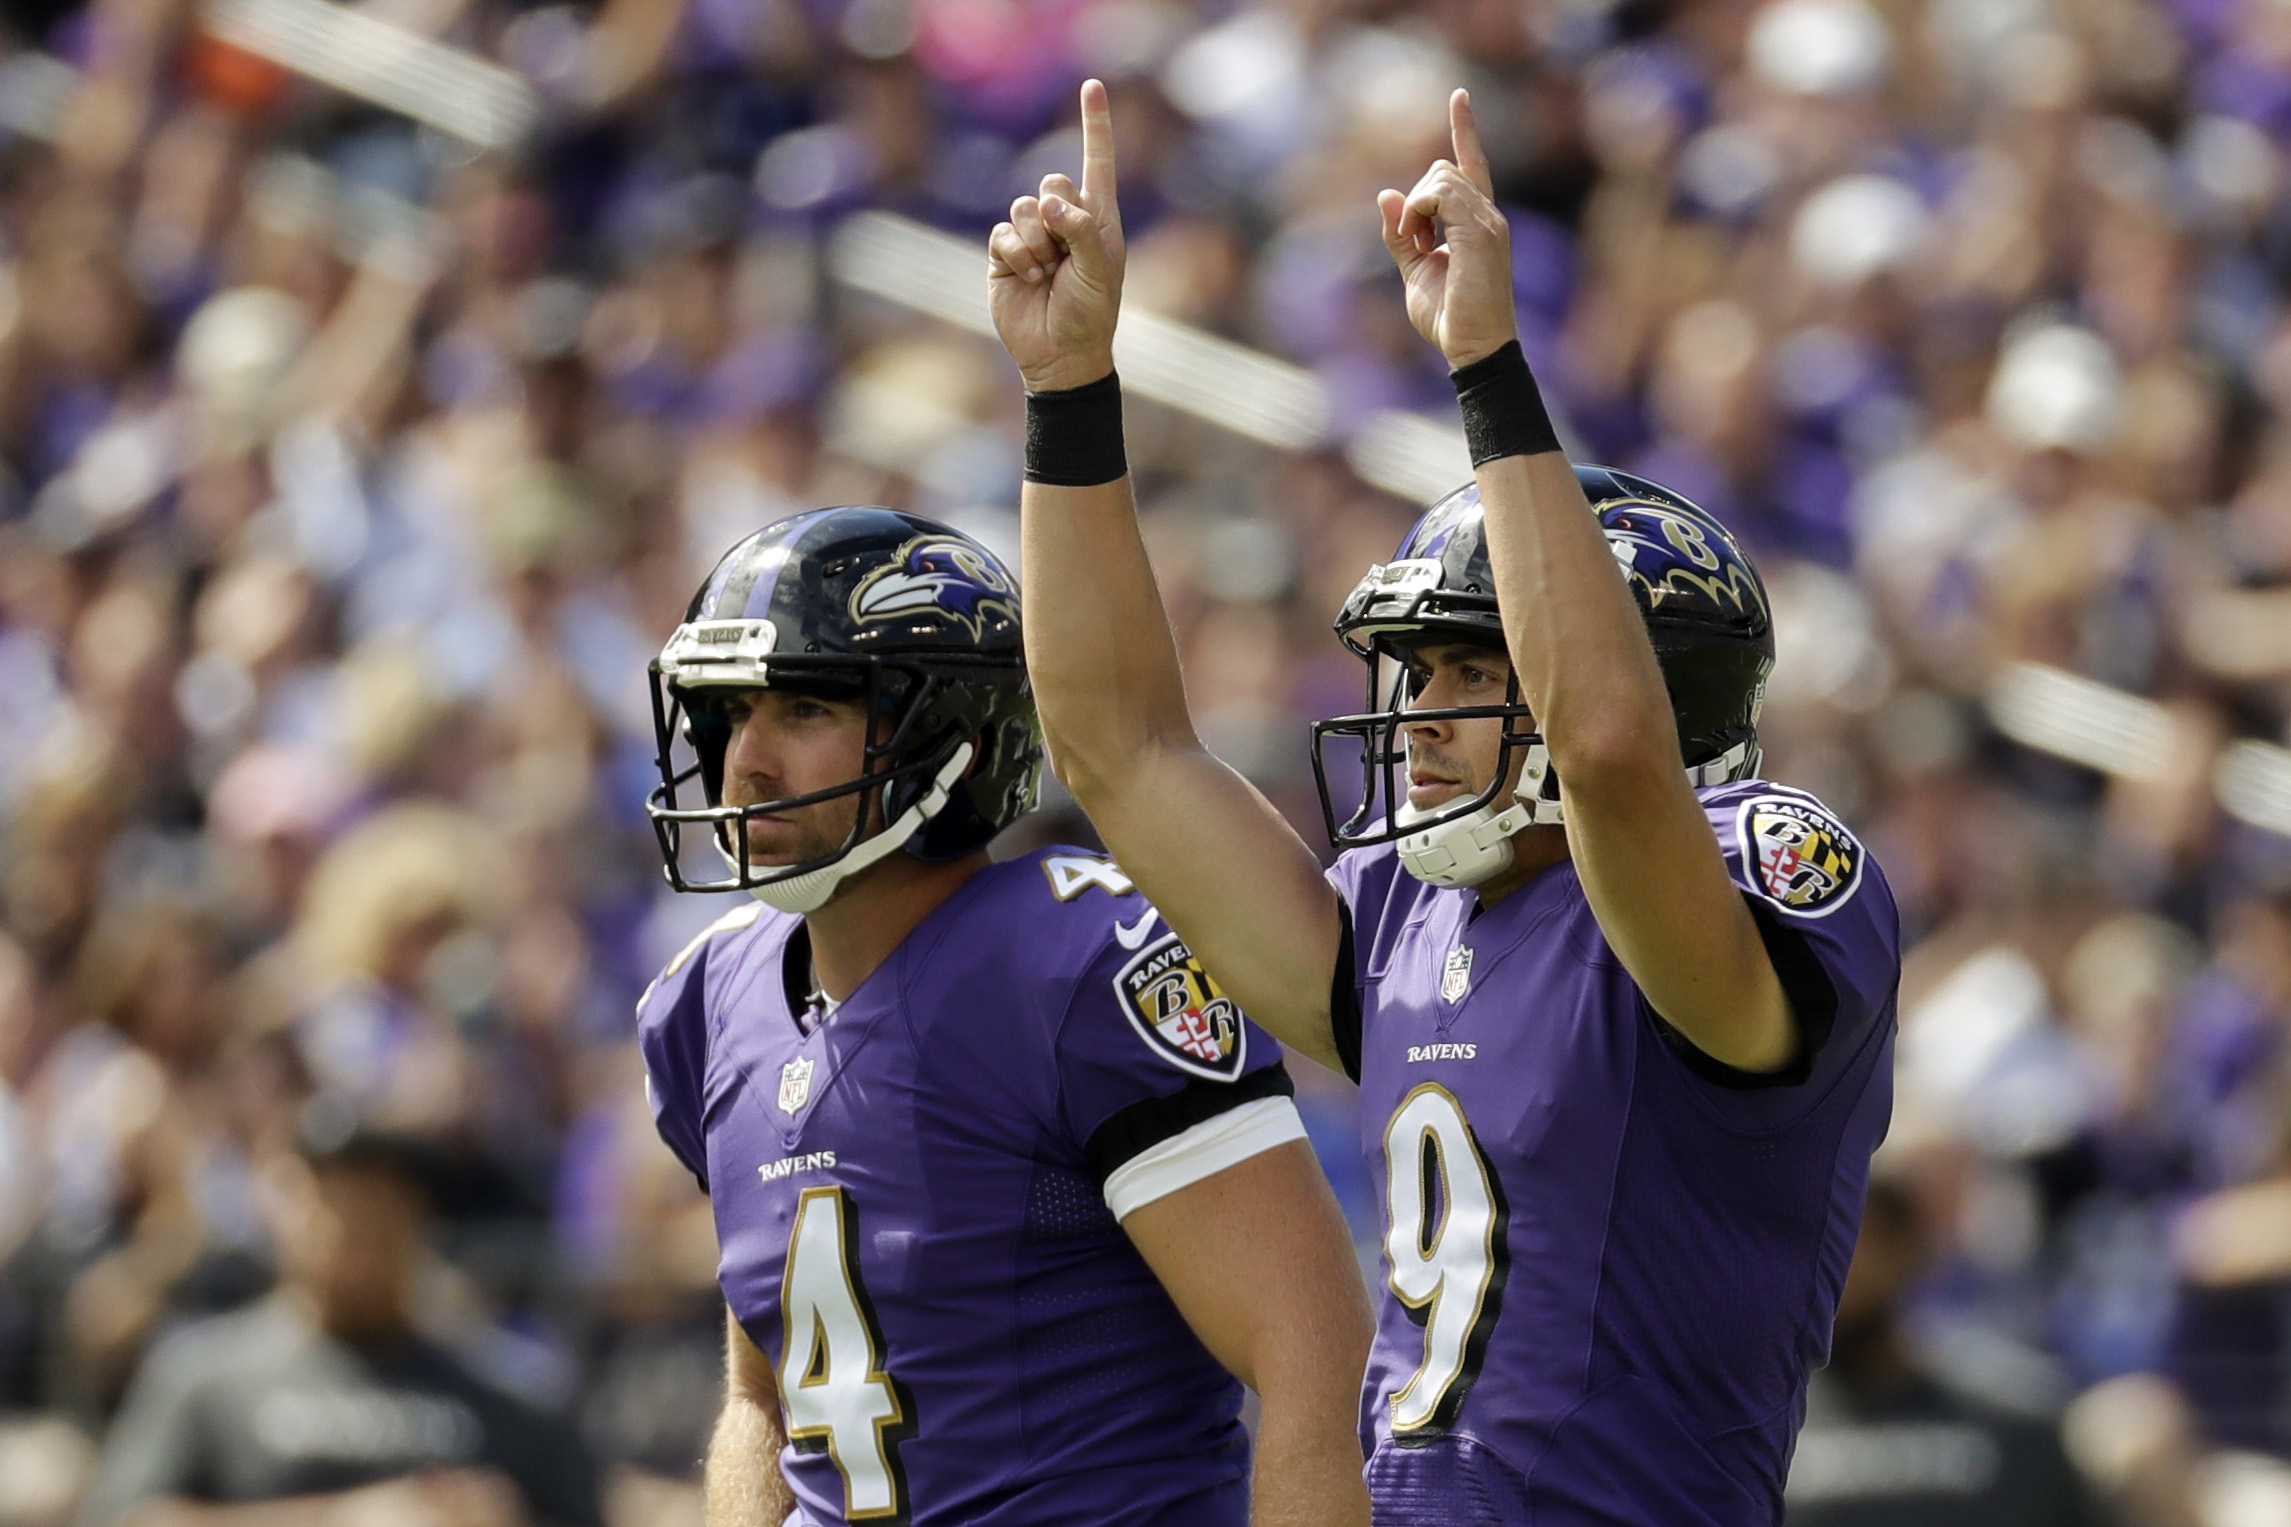 Baltimore Ravens kicker Justin Tucker (9) celebrates his field goal as he walks off the field with teammate Sam Koch (4) during the first half of an NFL football game against the Buffalo Bills in Baltimore, Sunday, Sept. 11, 2016. (AP Photo/Patrick Semans